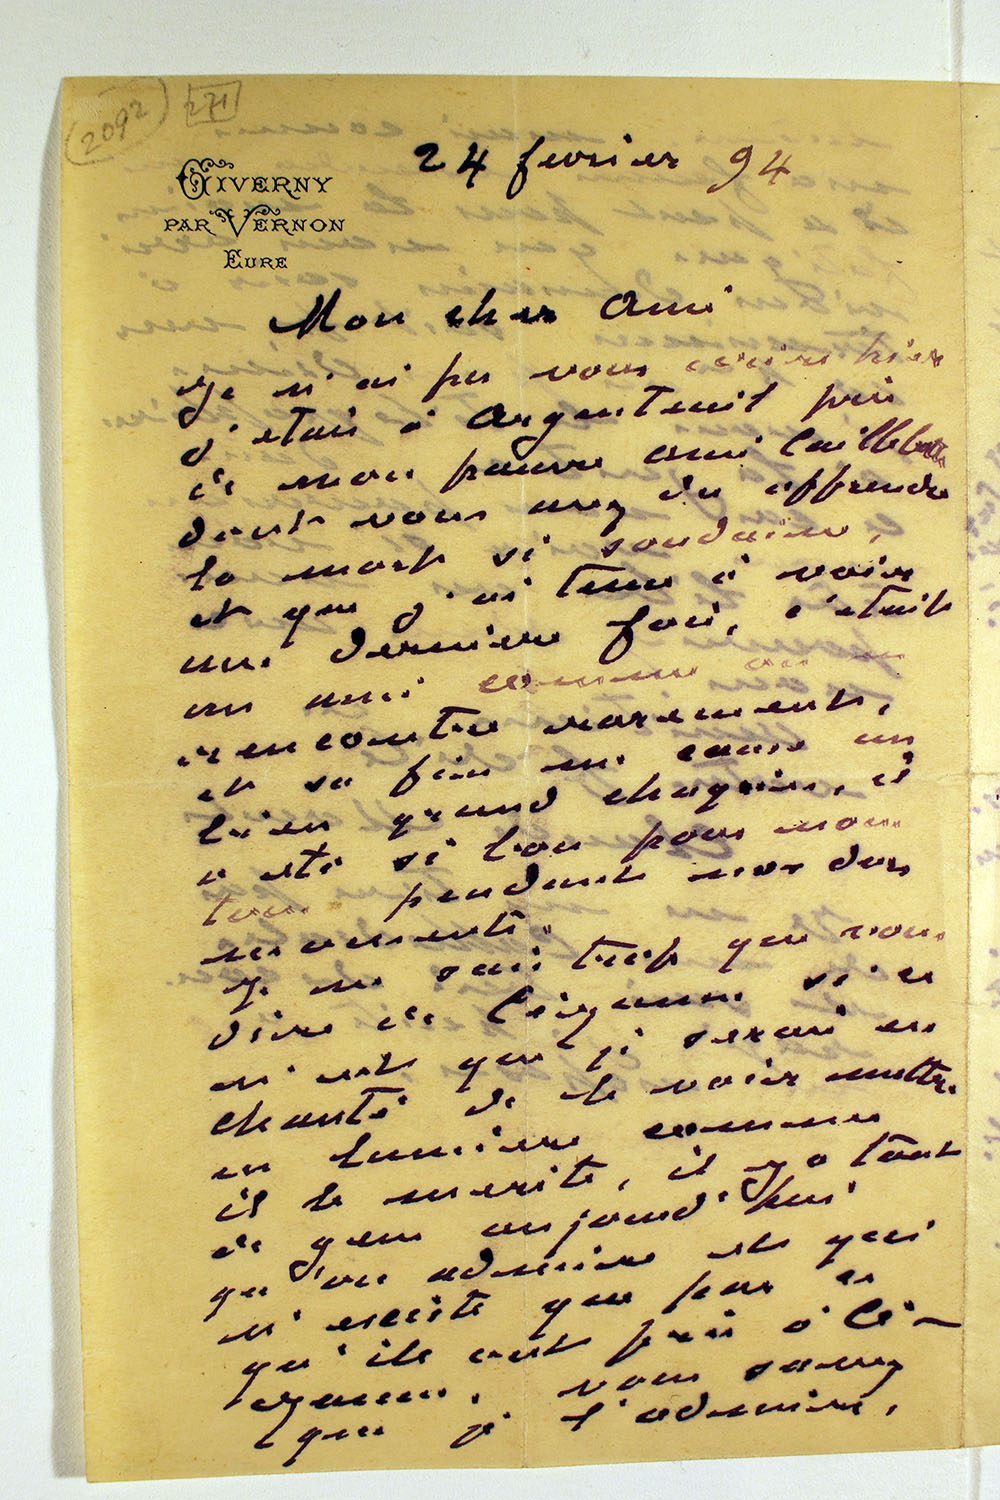 Page one of letter from Claude Monet to unknown recipient, February 24, 1894